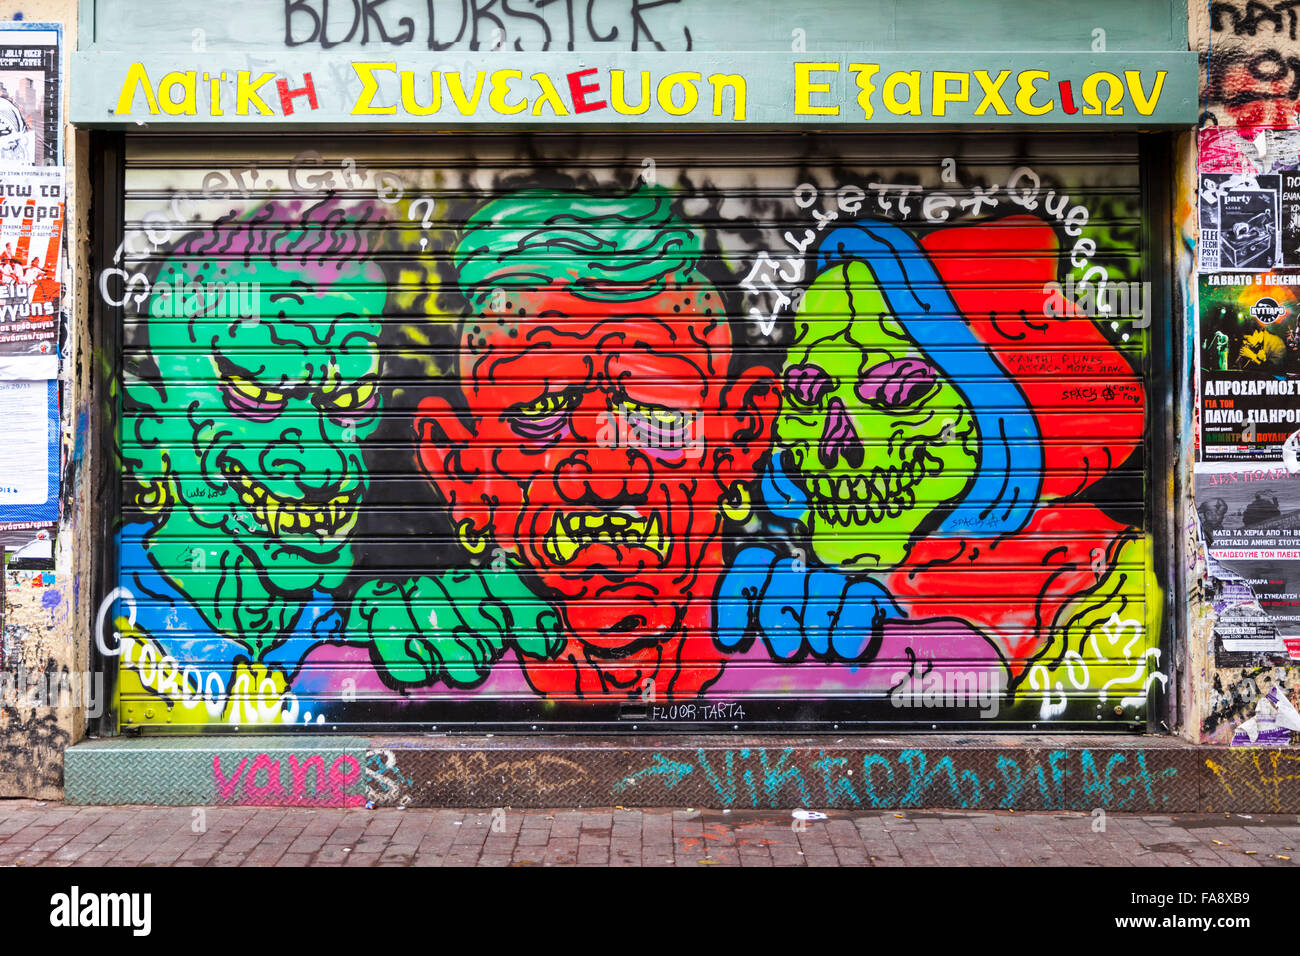 Commercial graffiti shop front on the door shutters of a shop in the Exarcheia area of Athens, Greece - Stock Image